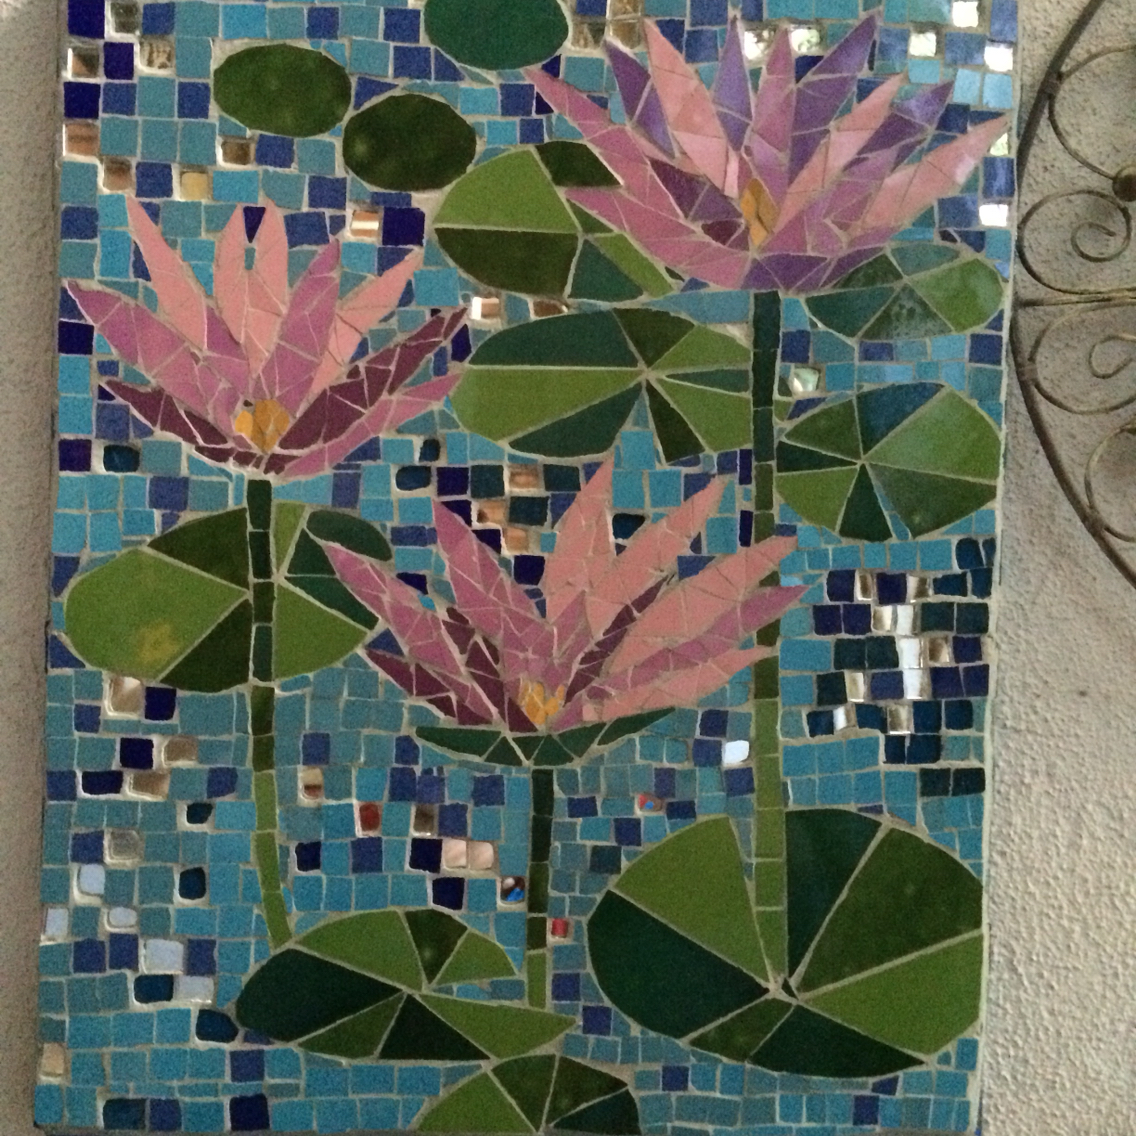 Mosaic Art as a Unique and Interesting Decoration for Your Interior